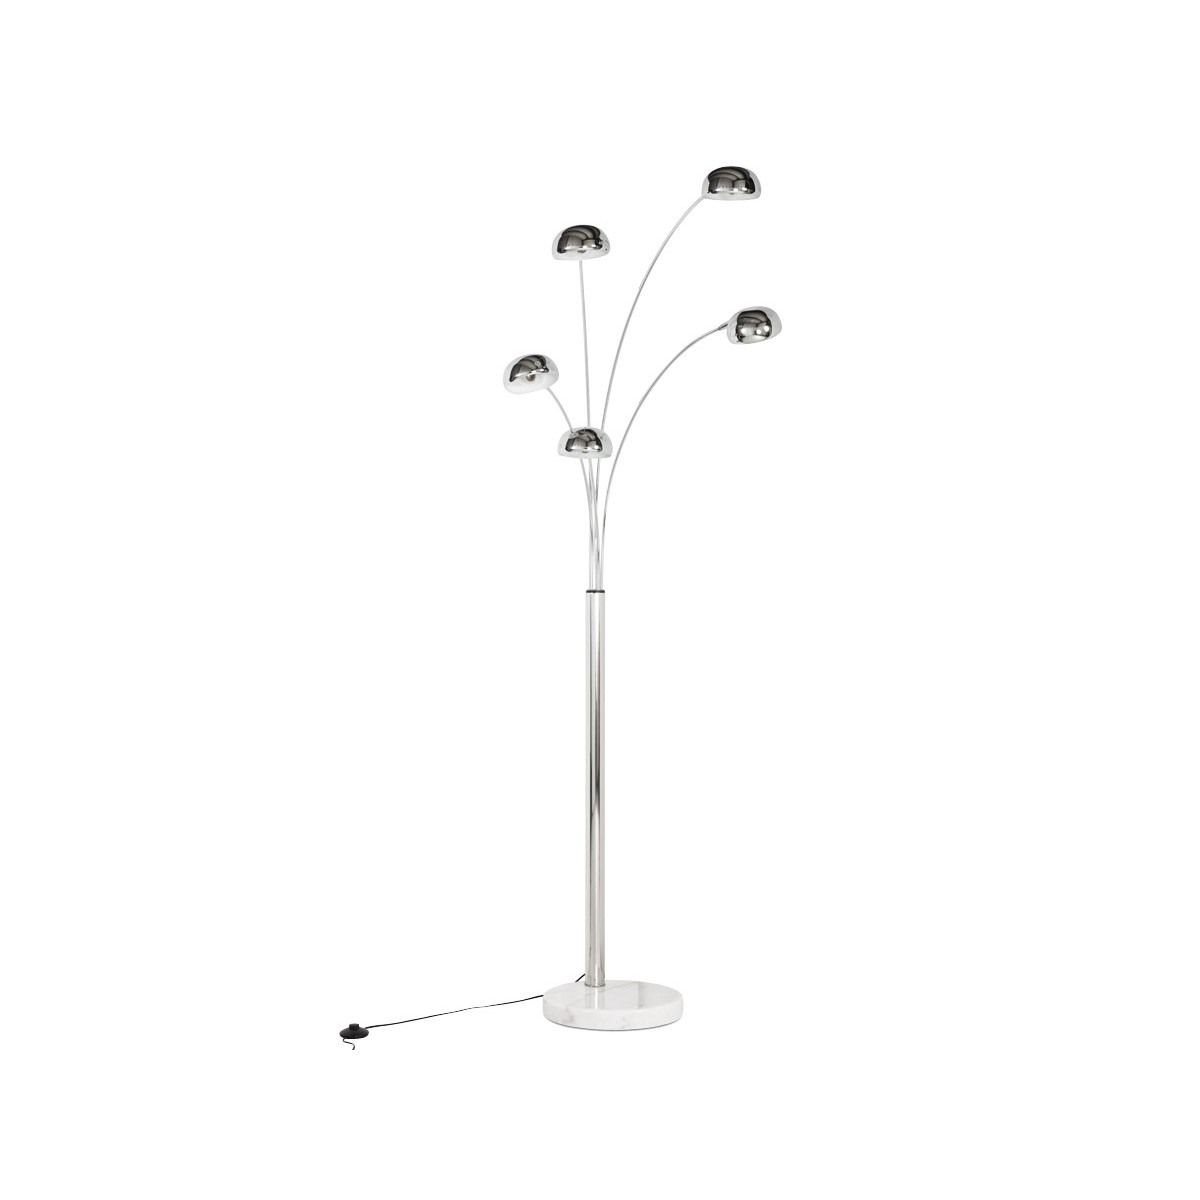 Design Küchenlampe Rollier Design Floor Lamp 5 Shades Chrome Steel (chrome)